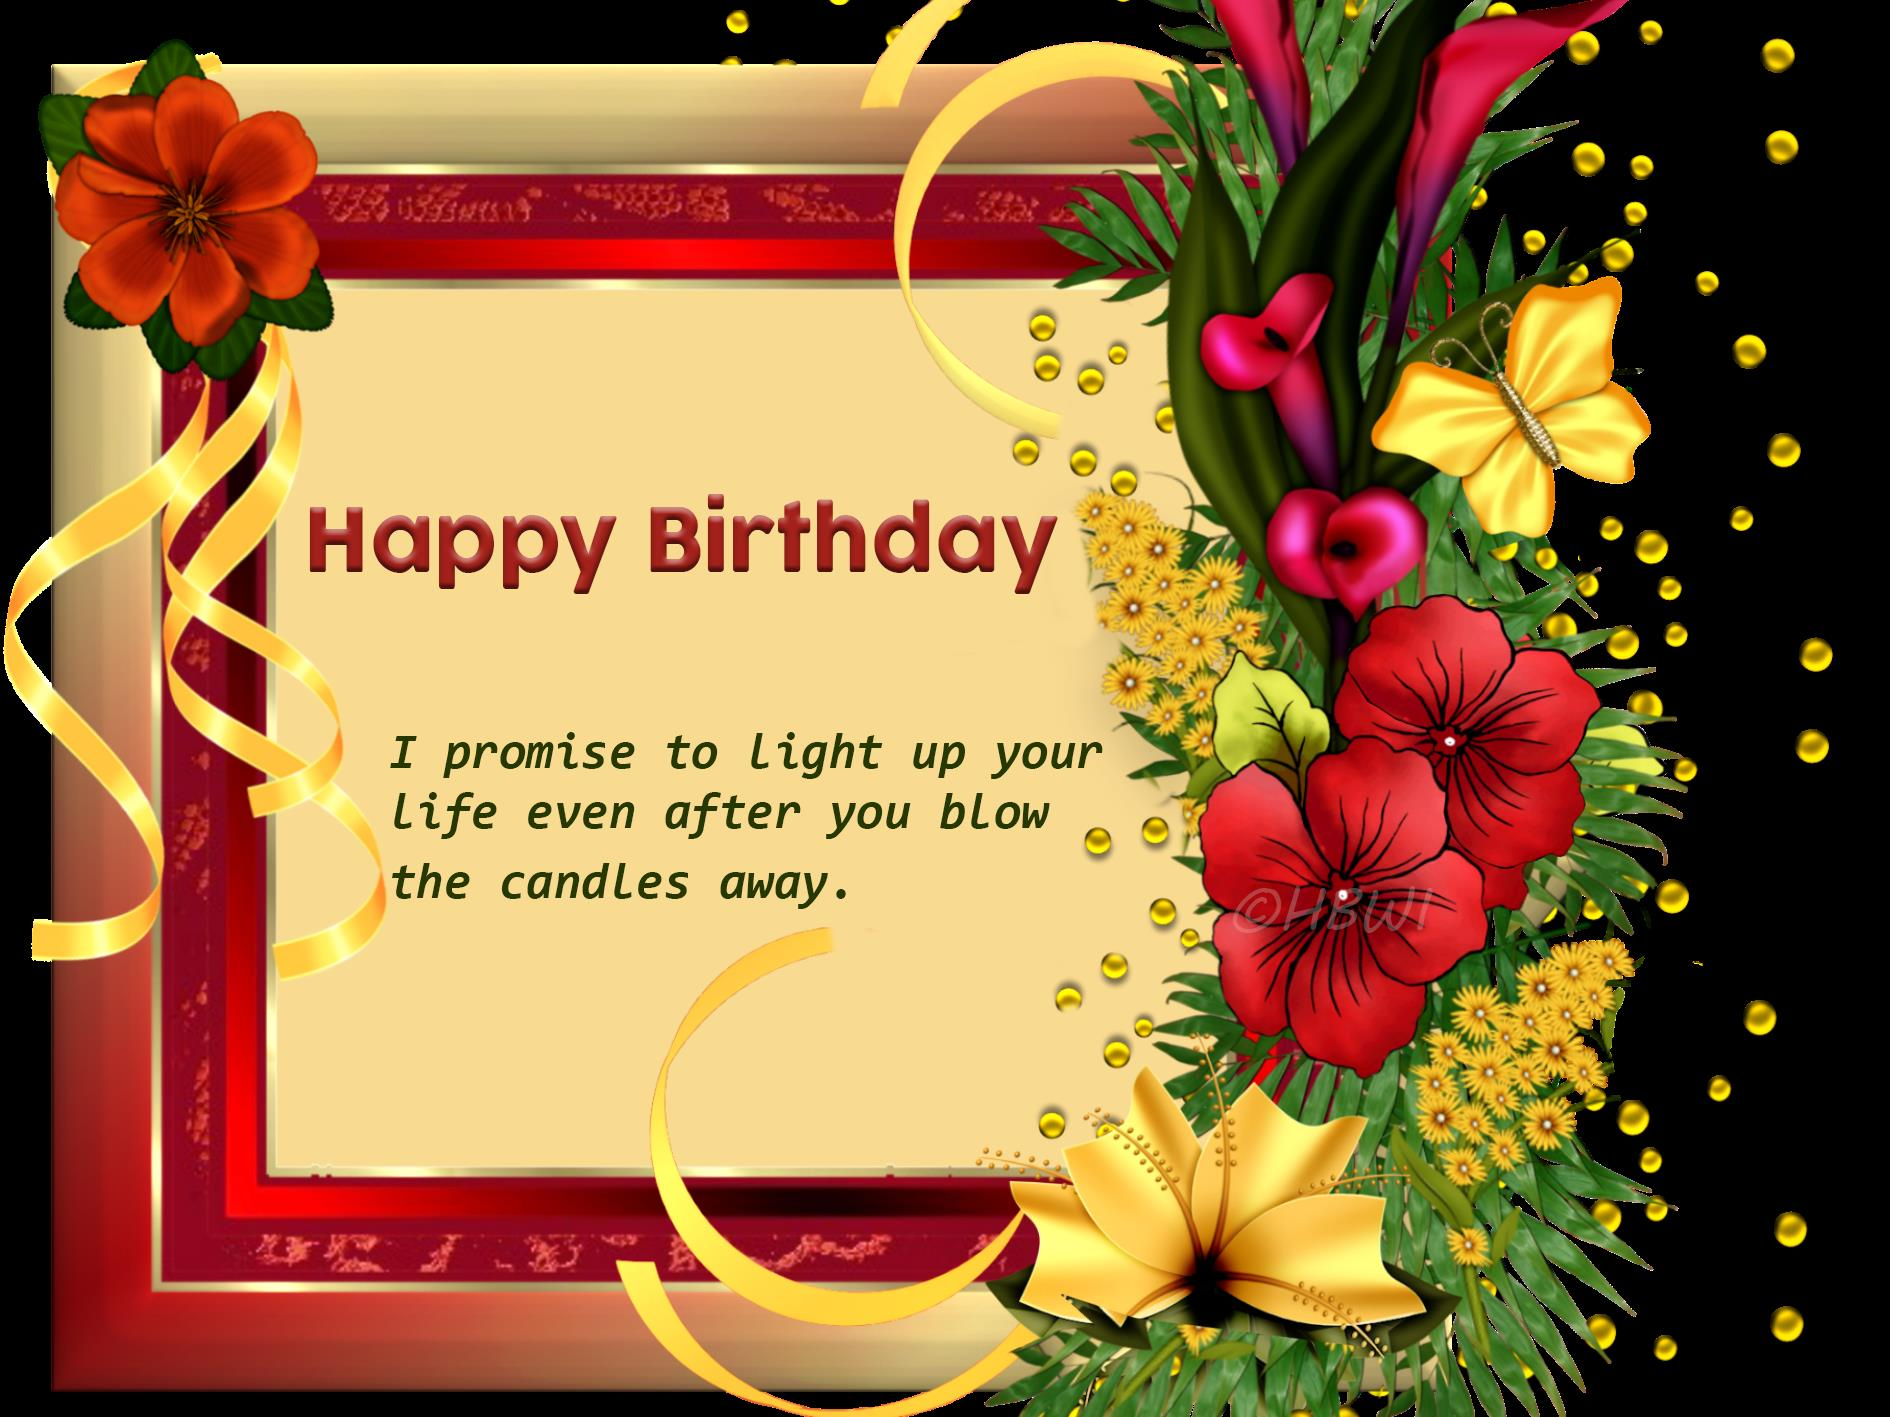 happy birthday card images for her ; exclusive-Happy-birthday-wishes-cards-with-flowers